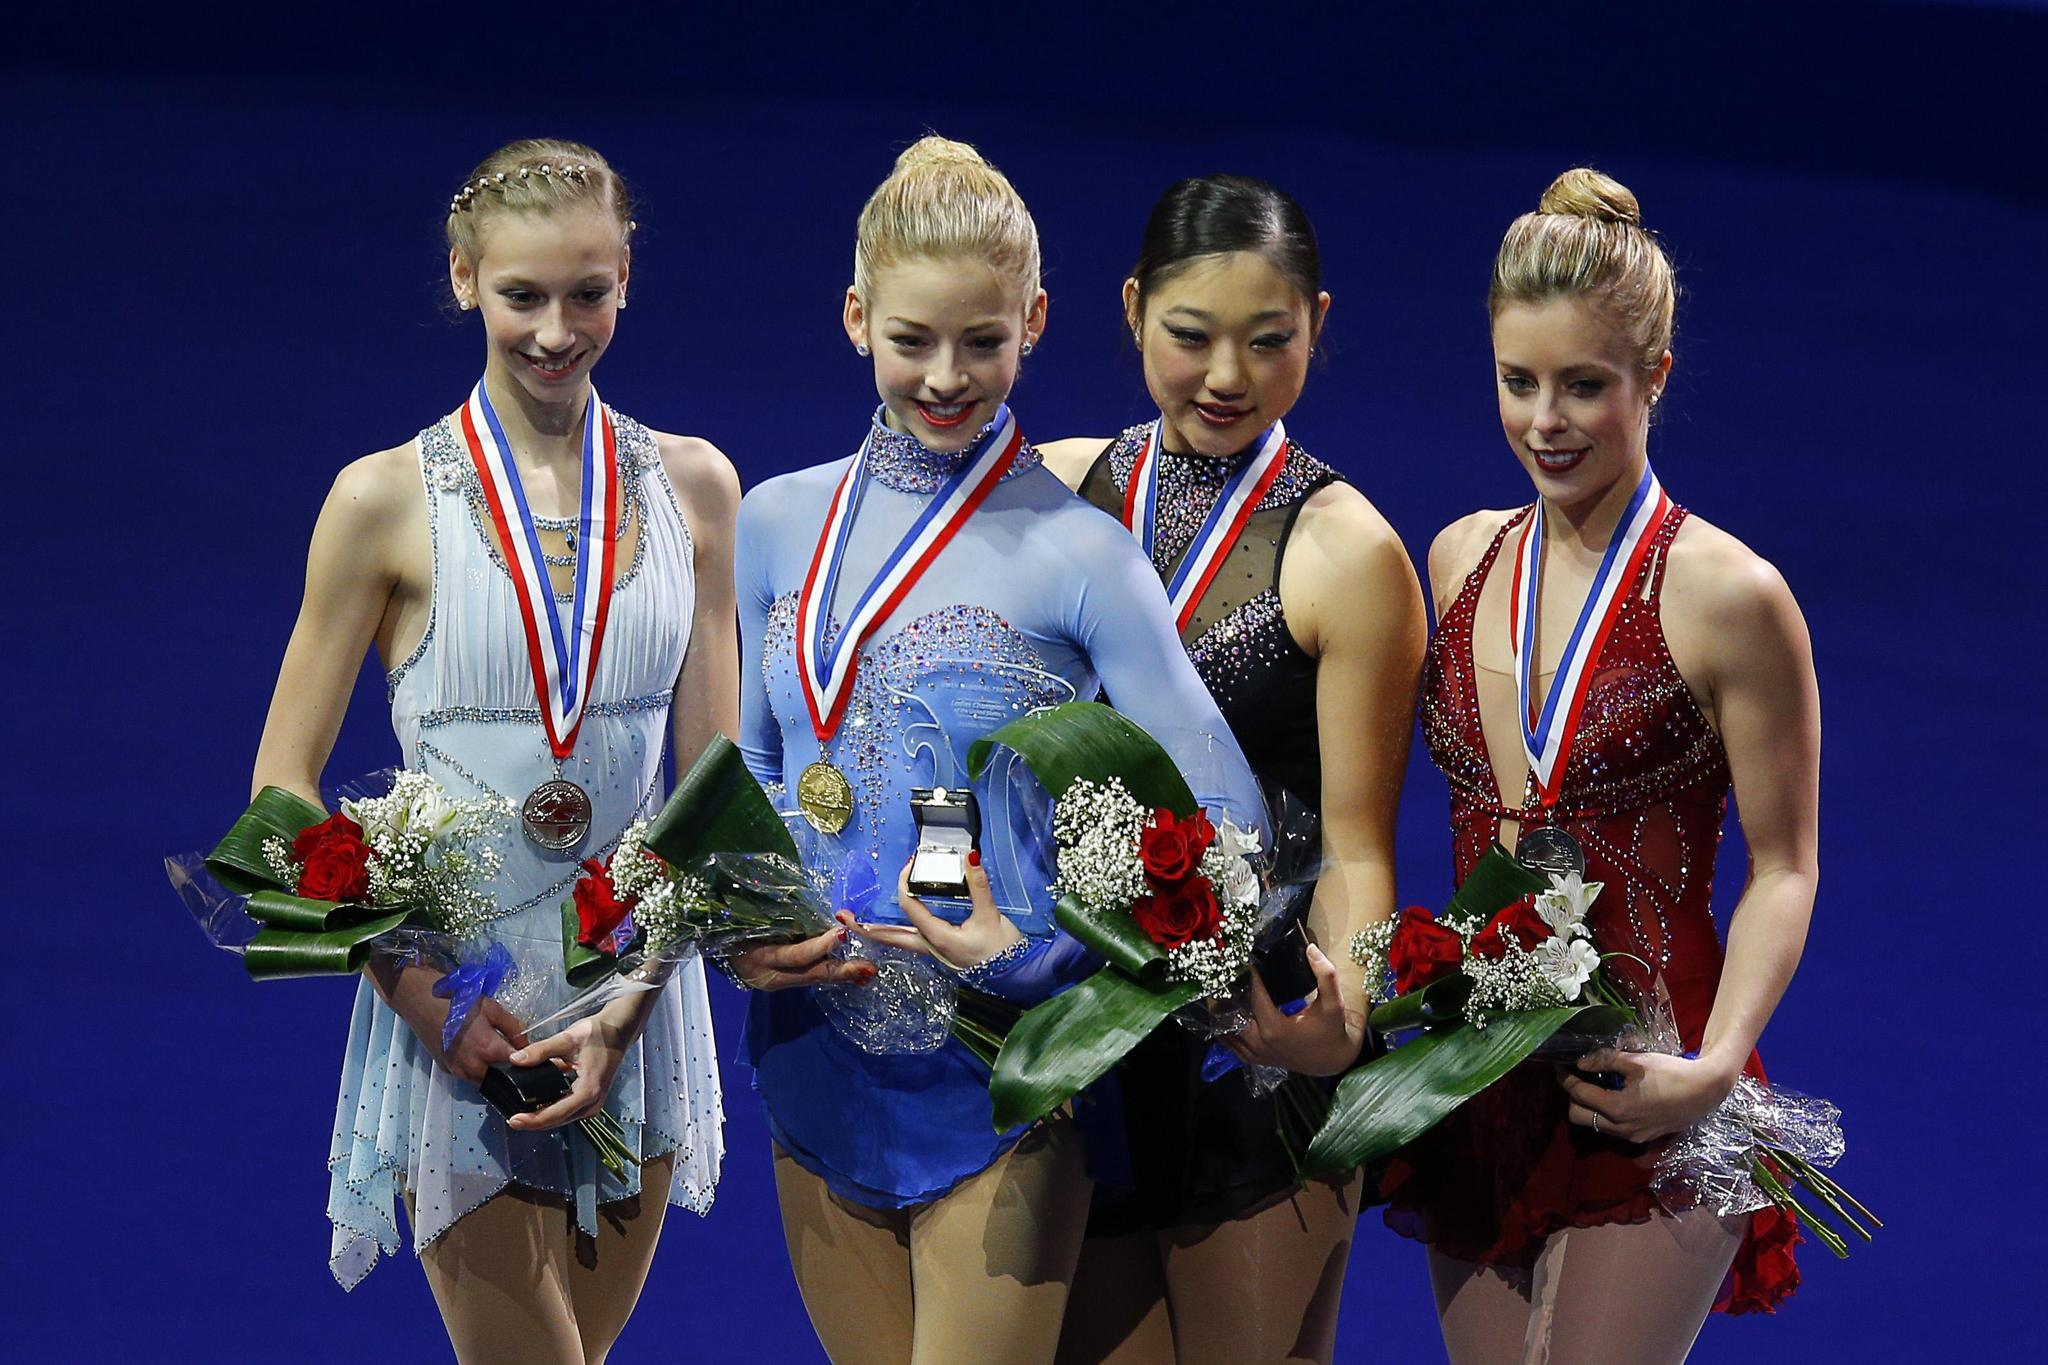 Polina Edmunds, Gracie Gold, Mirai Nagasu and Ashley Wagner (l. to r.) during Saturday's awards ceremony at the U.S. Figure Skating Championships.